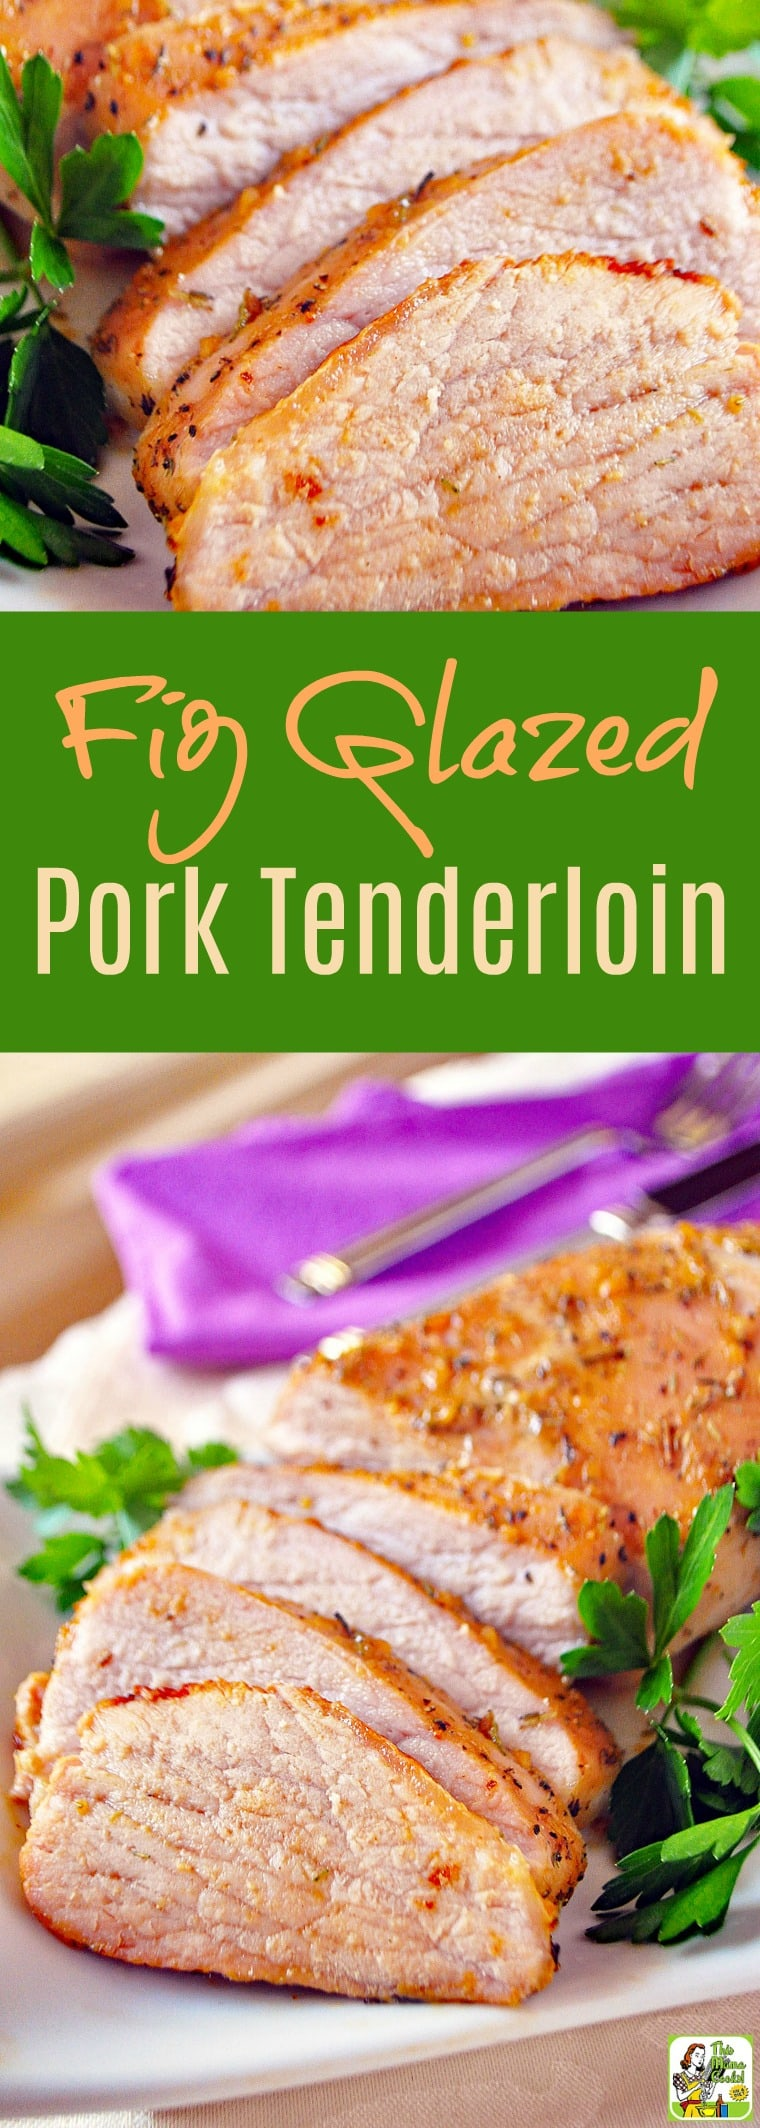 Fig Glazed Pork Tenderloin Recipe